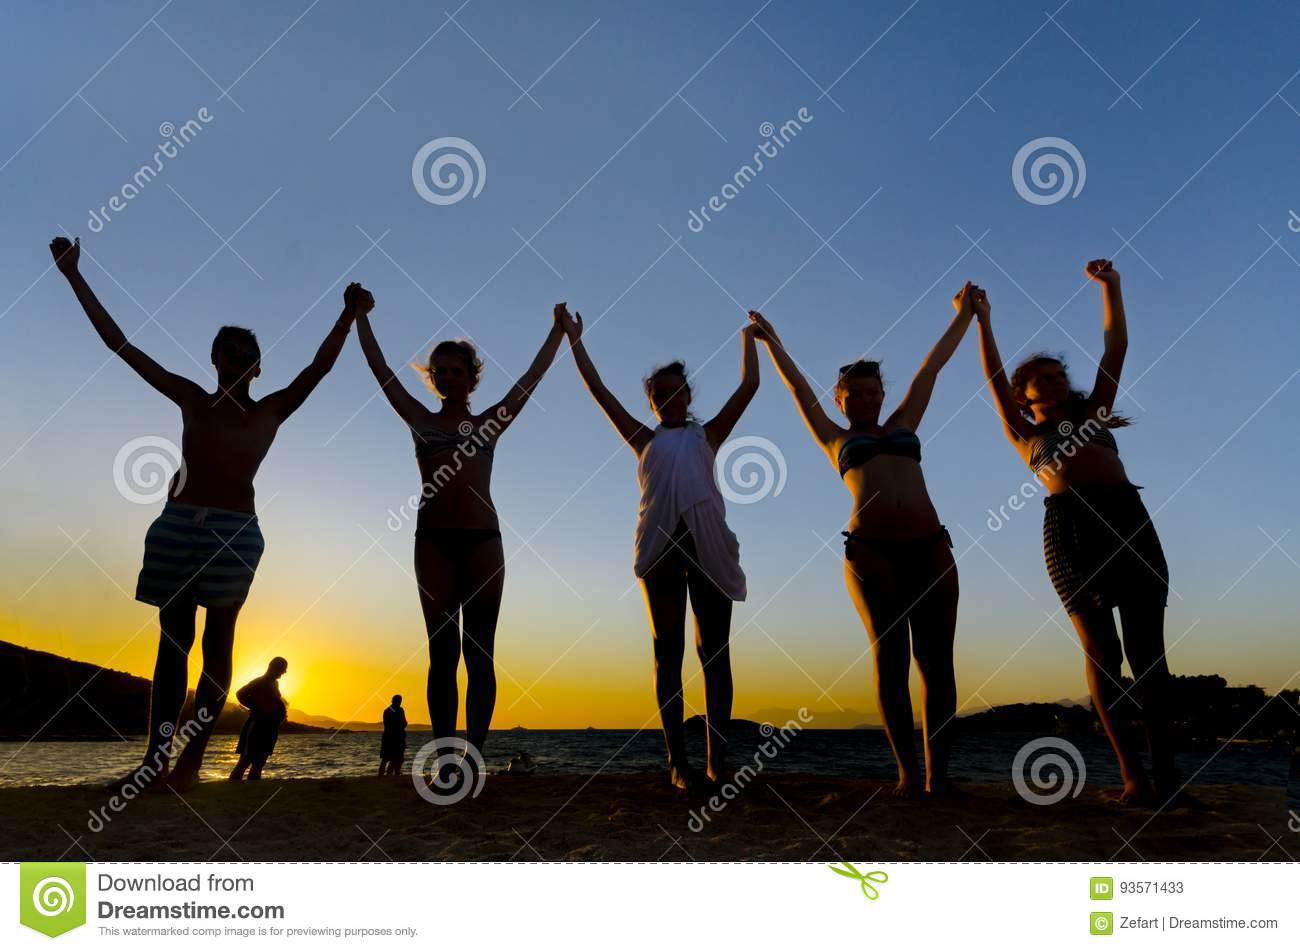 Group of People with Raised Arms backlit by sun